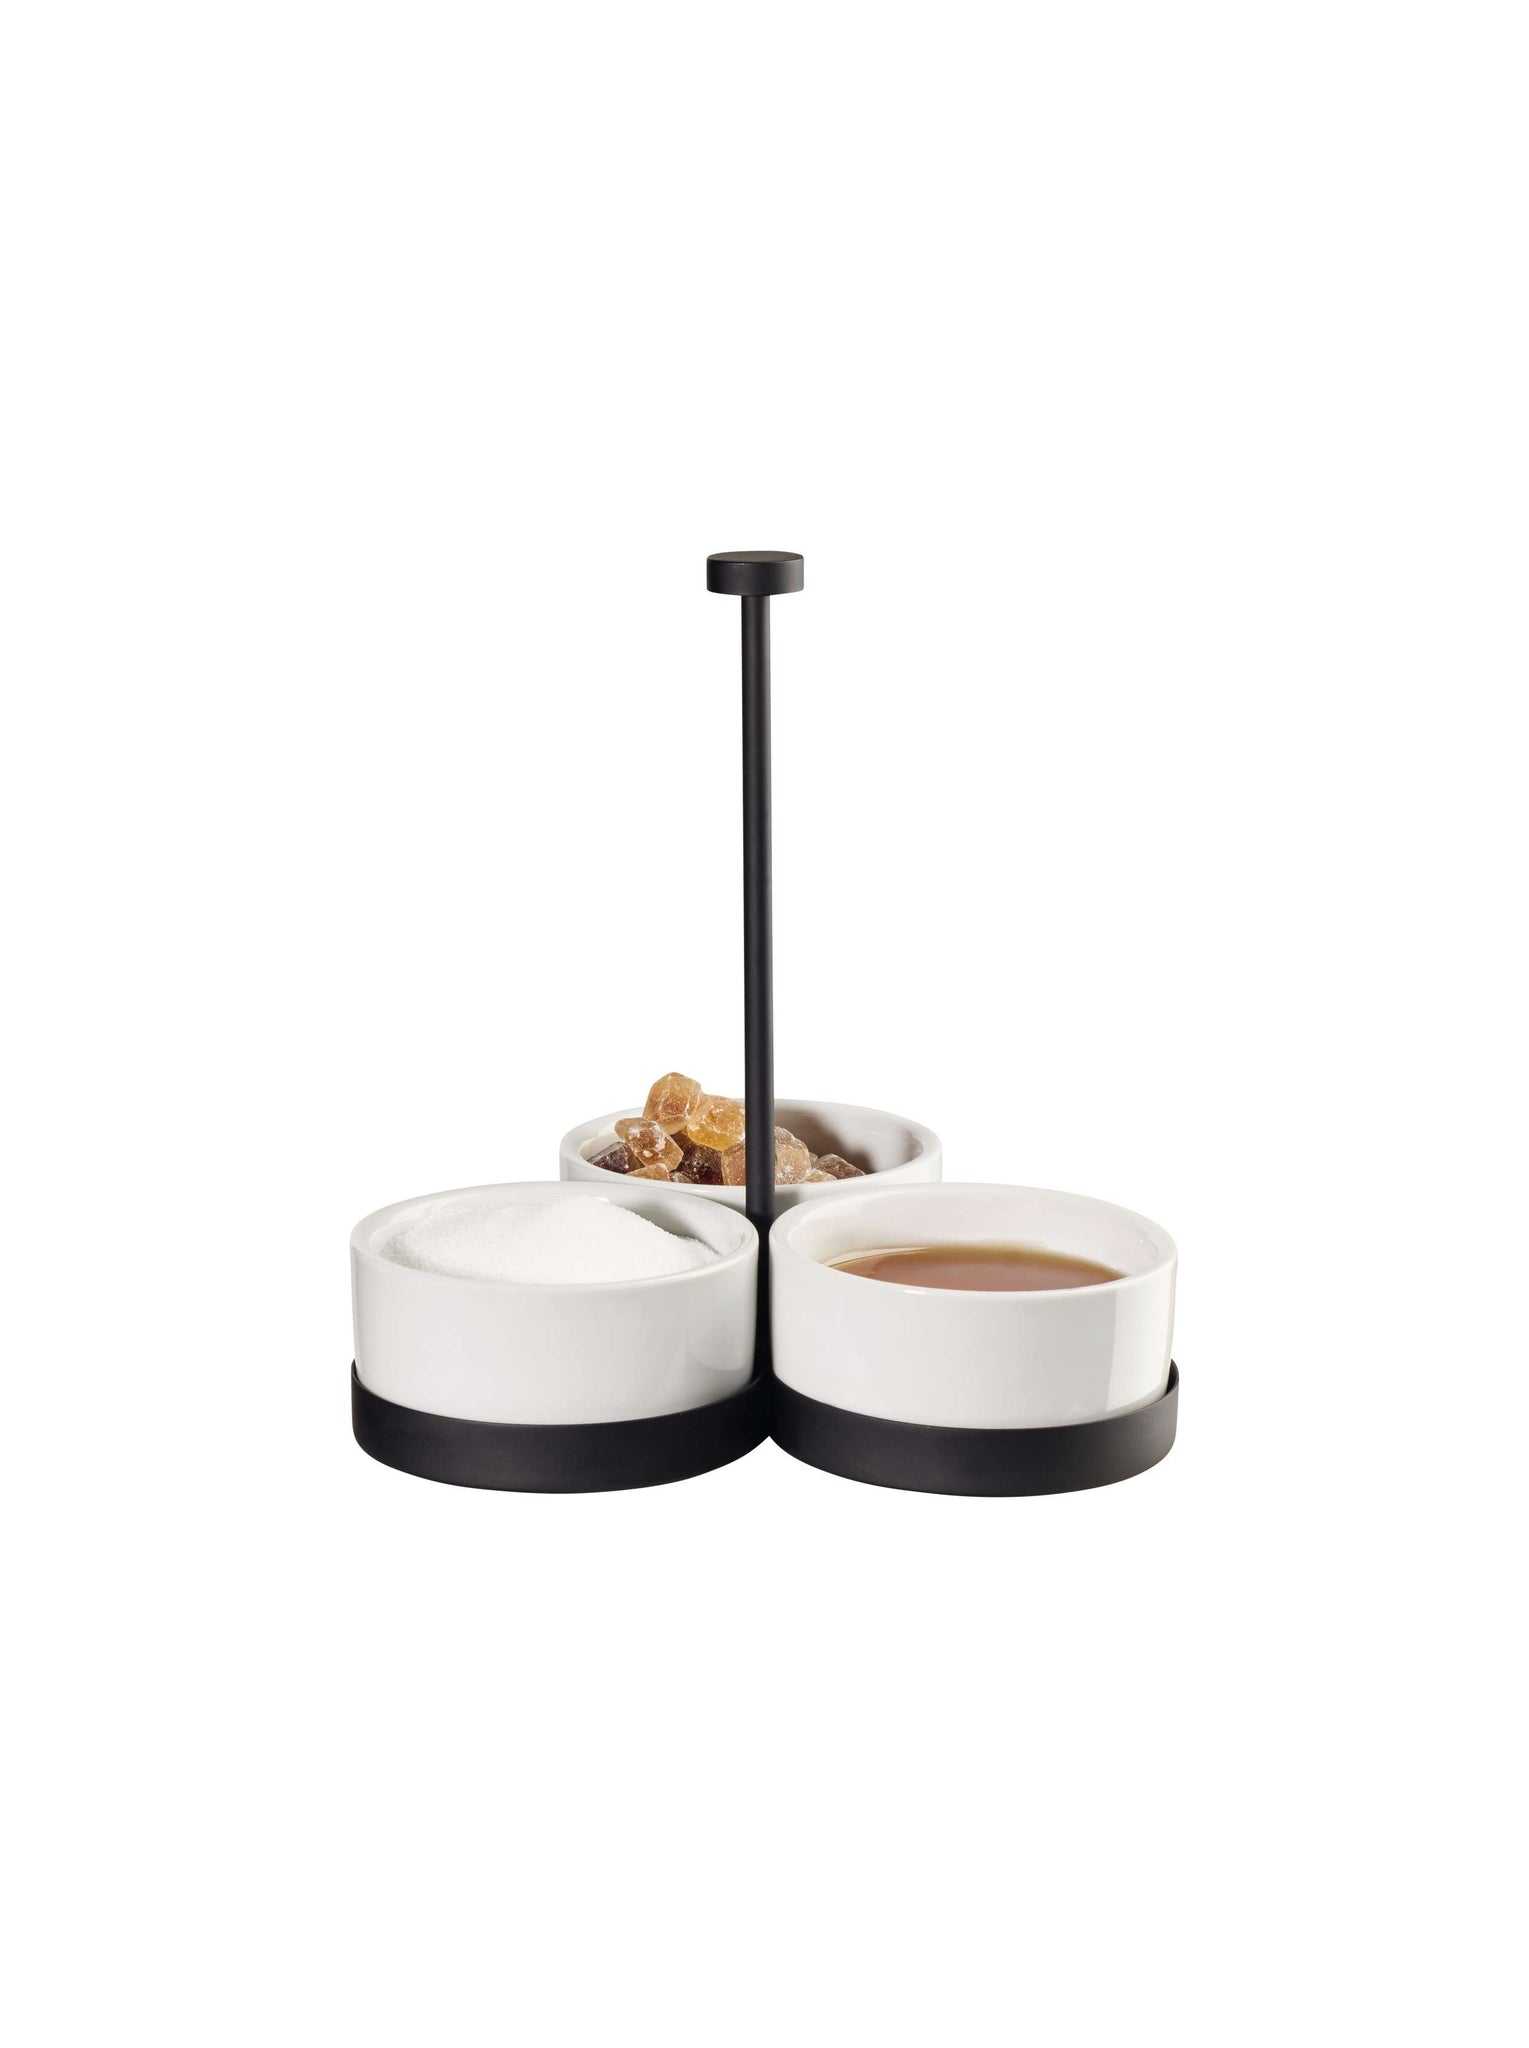 Black and White Dip Set with 3 Porcelain Bowls